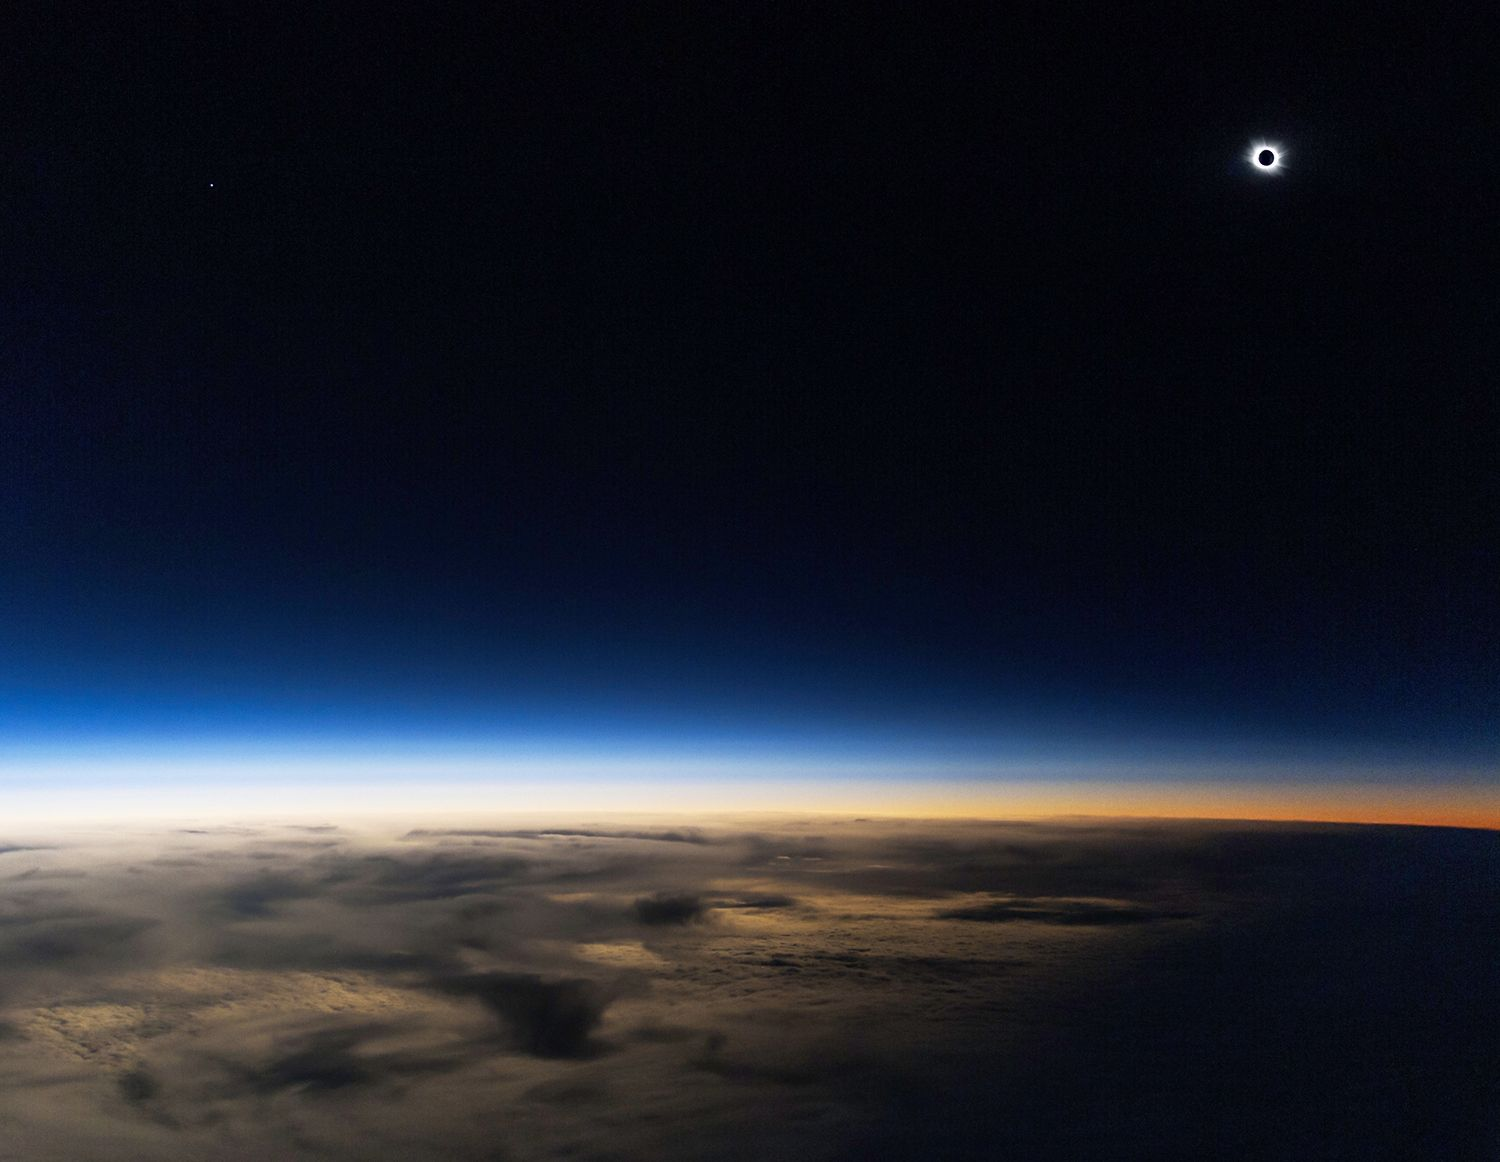 The solar eclipse on Friday, March 20, 2015, photographed ...